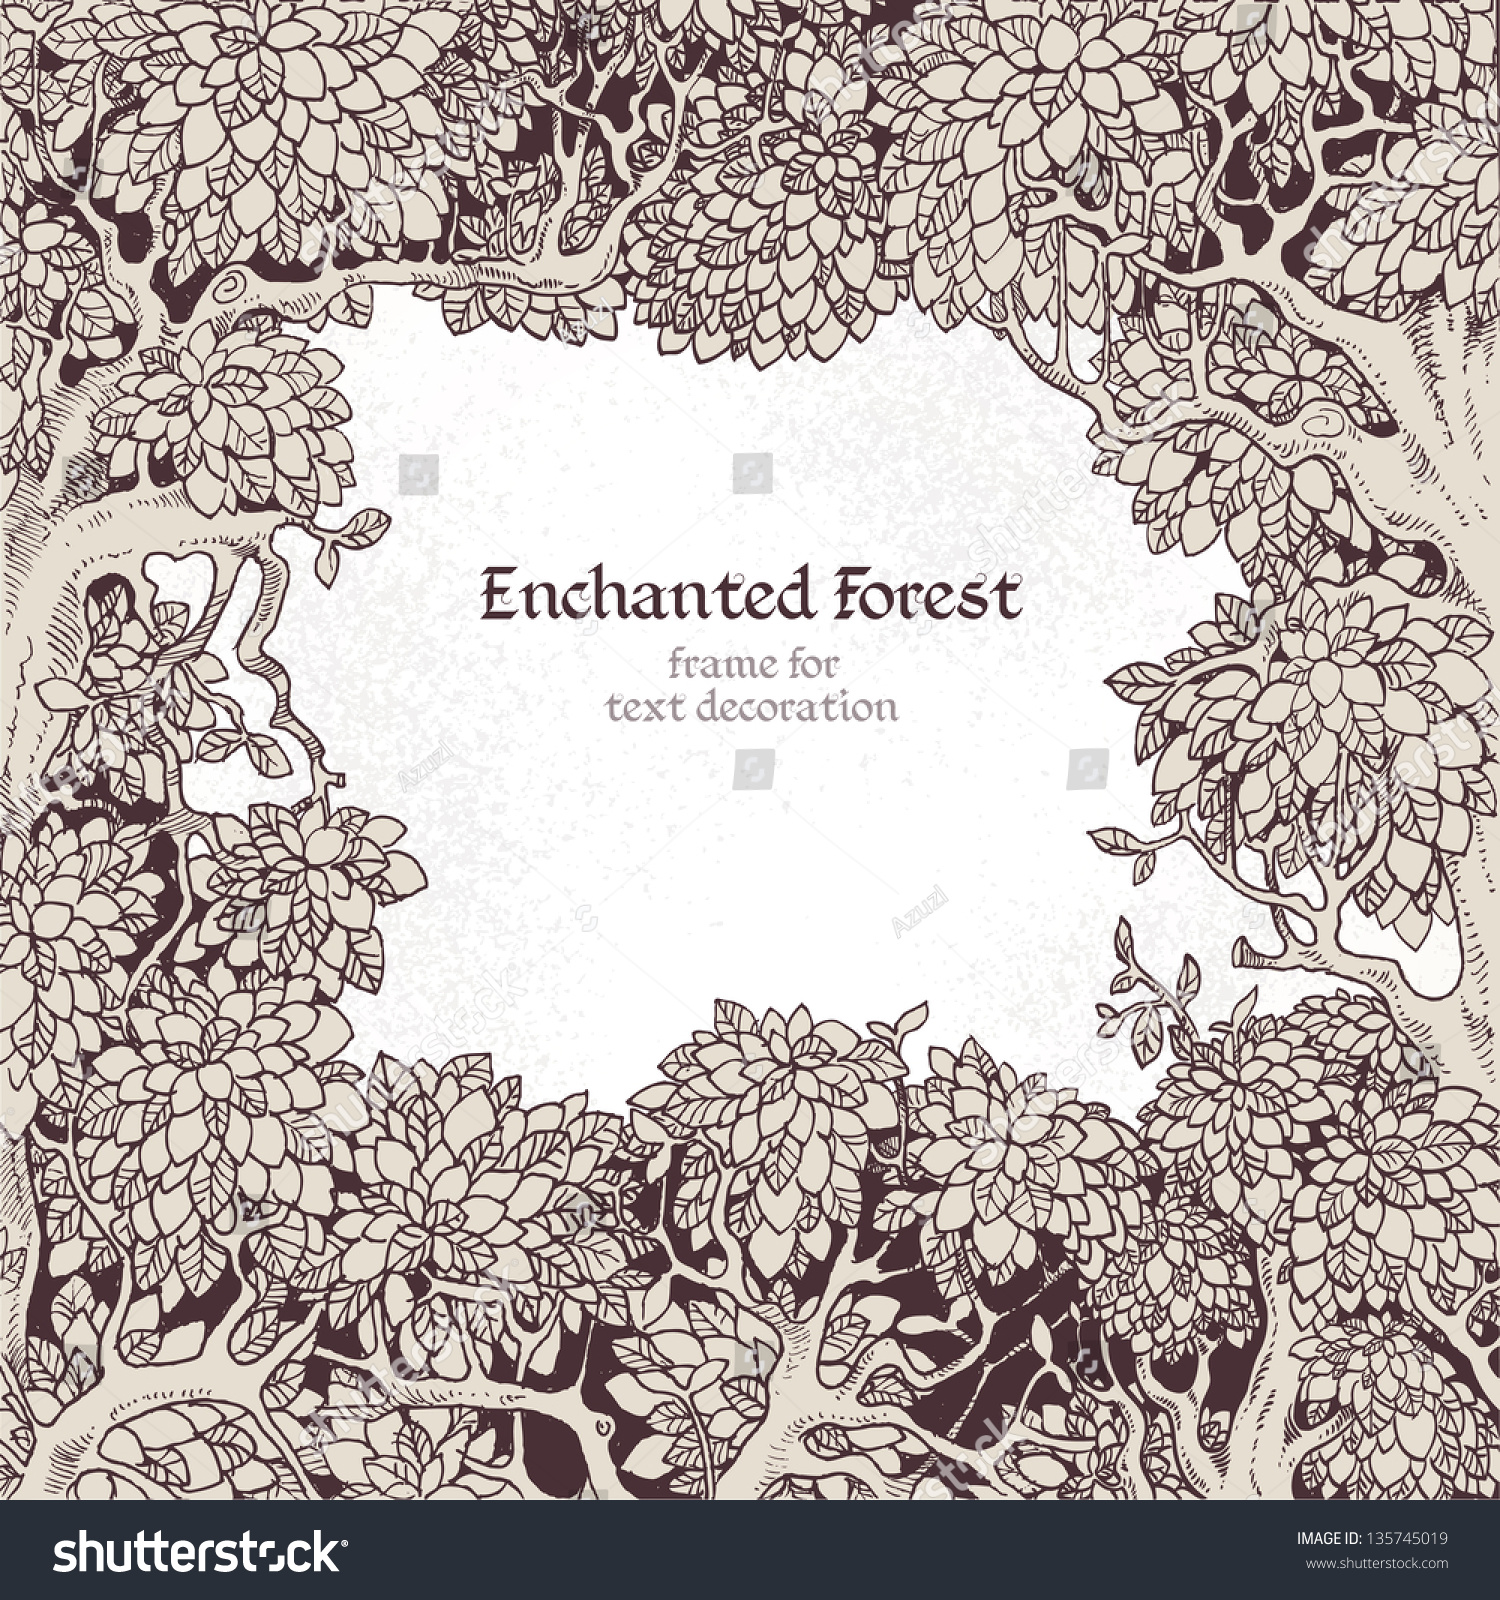 Frame for text decoration enchanted forest stock vector for A text decoration